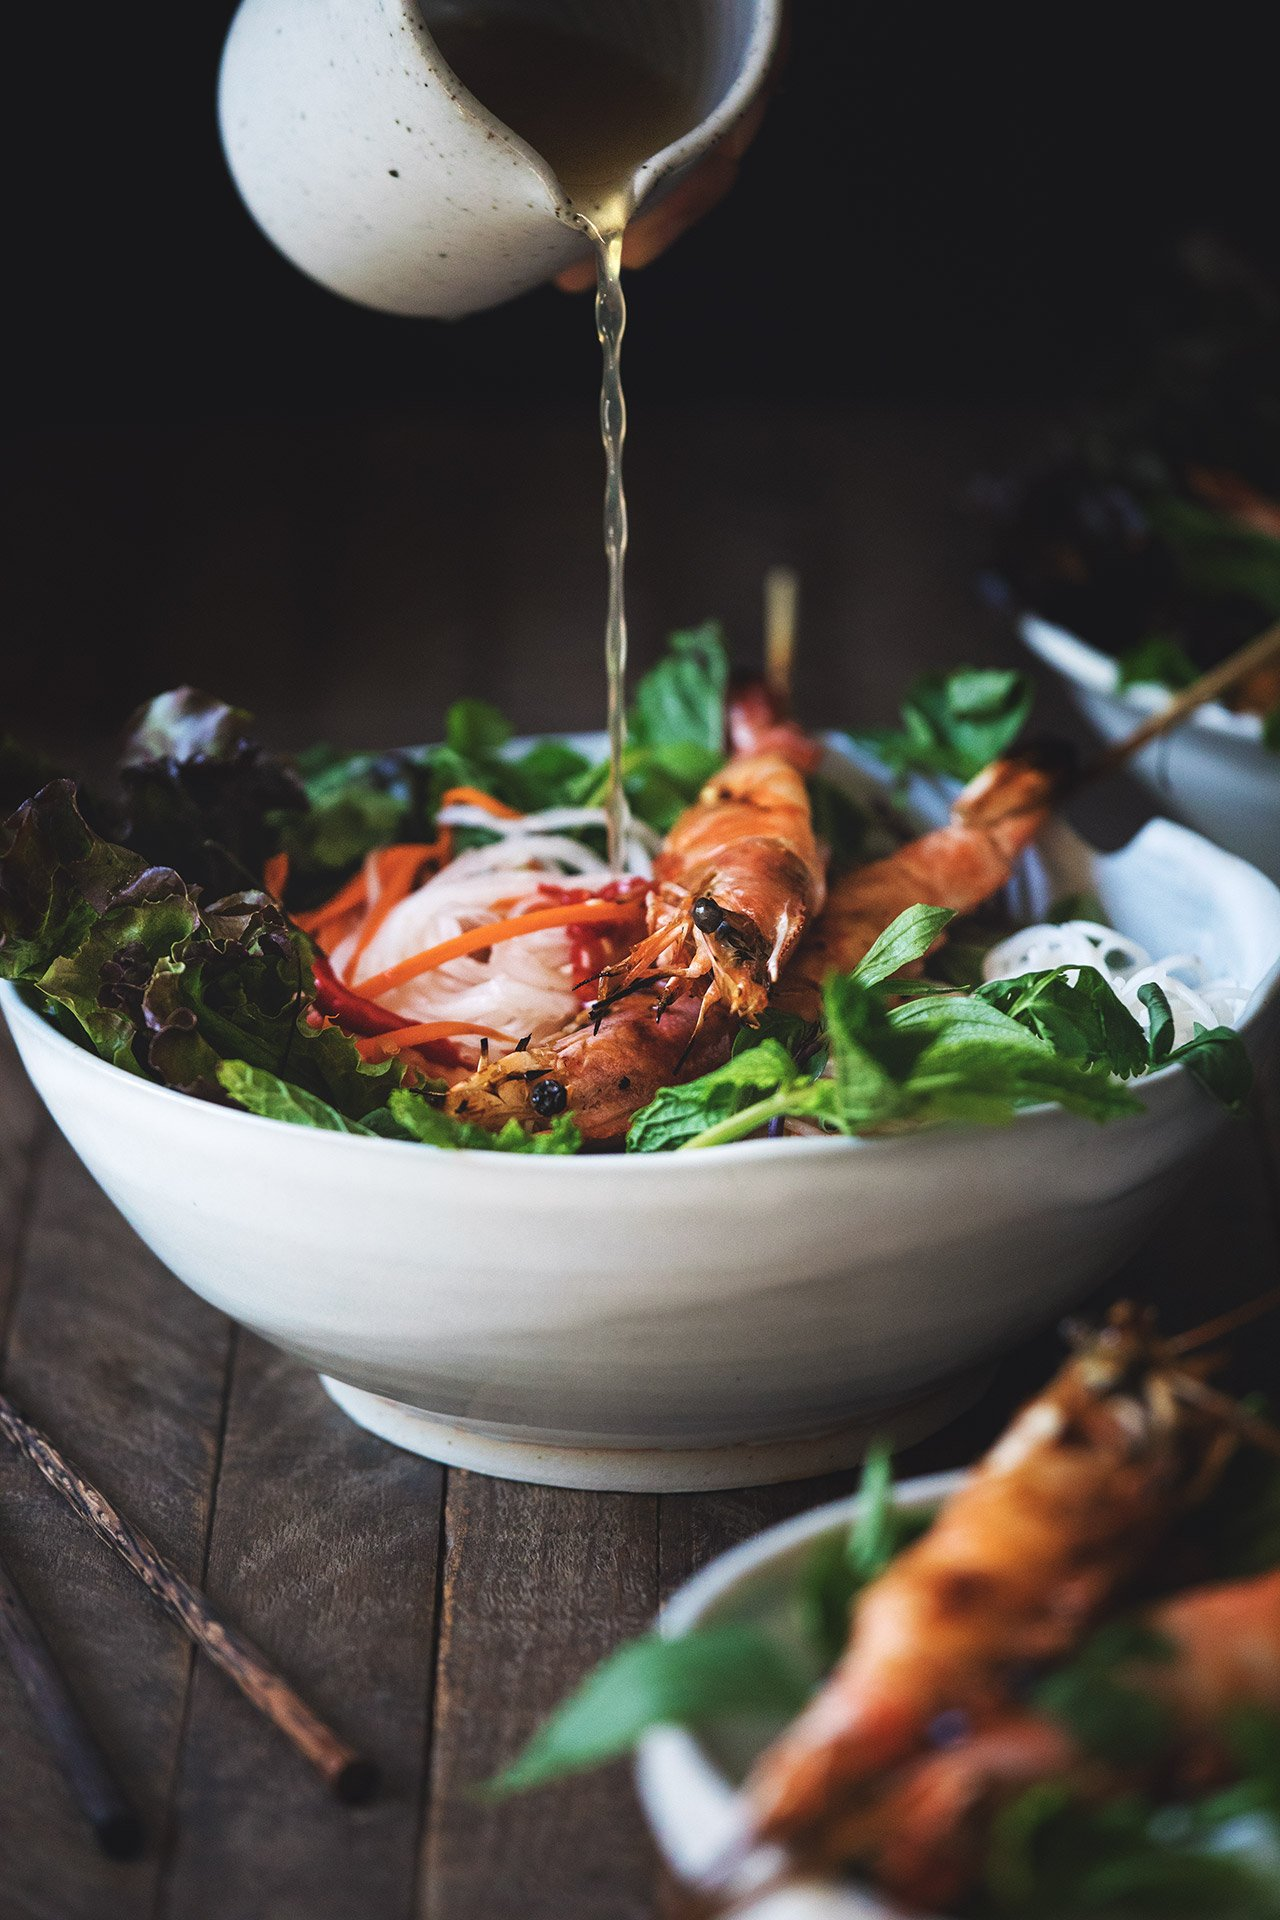 Vietnamese Grilled Prawn Noodle Salad by HonestlyYUM (honestlyyum.com)